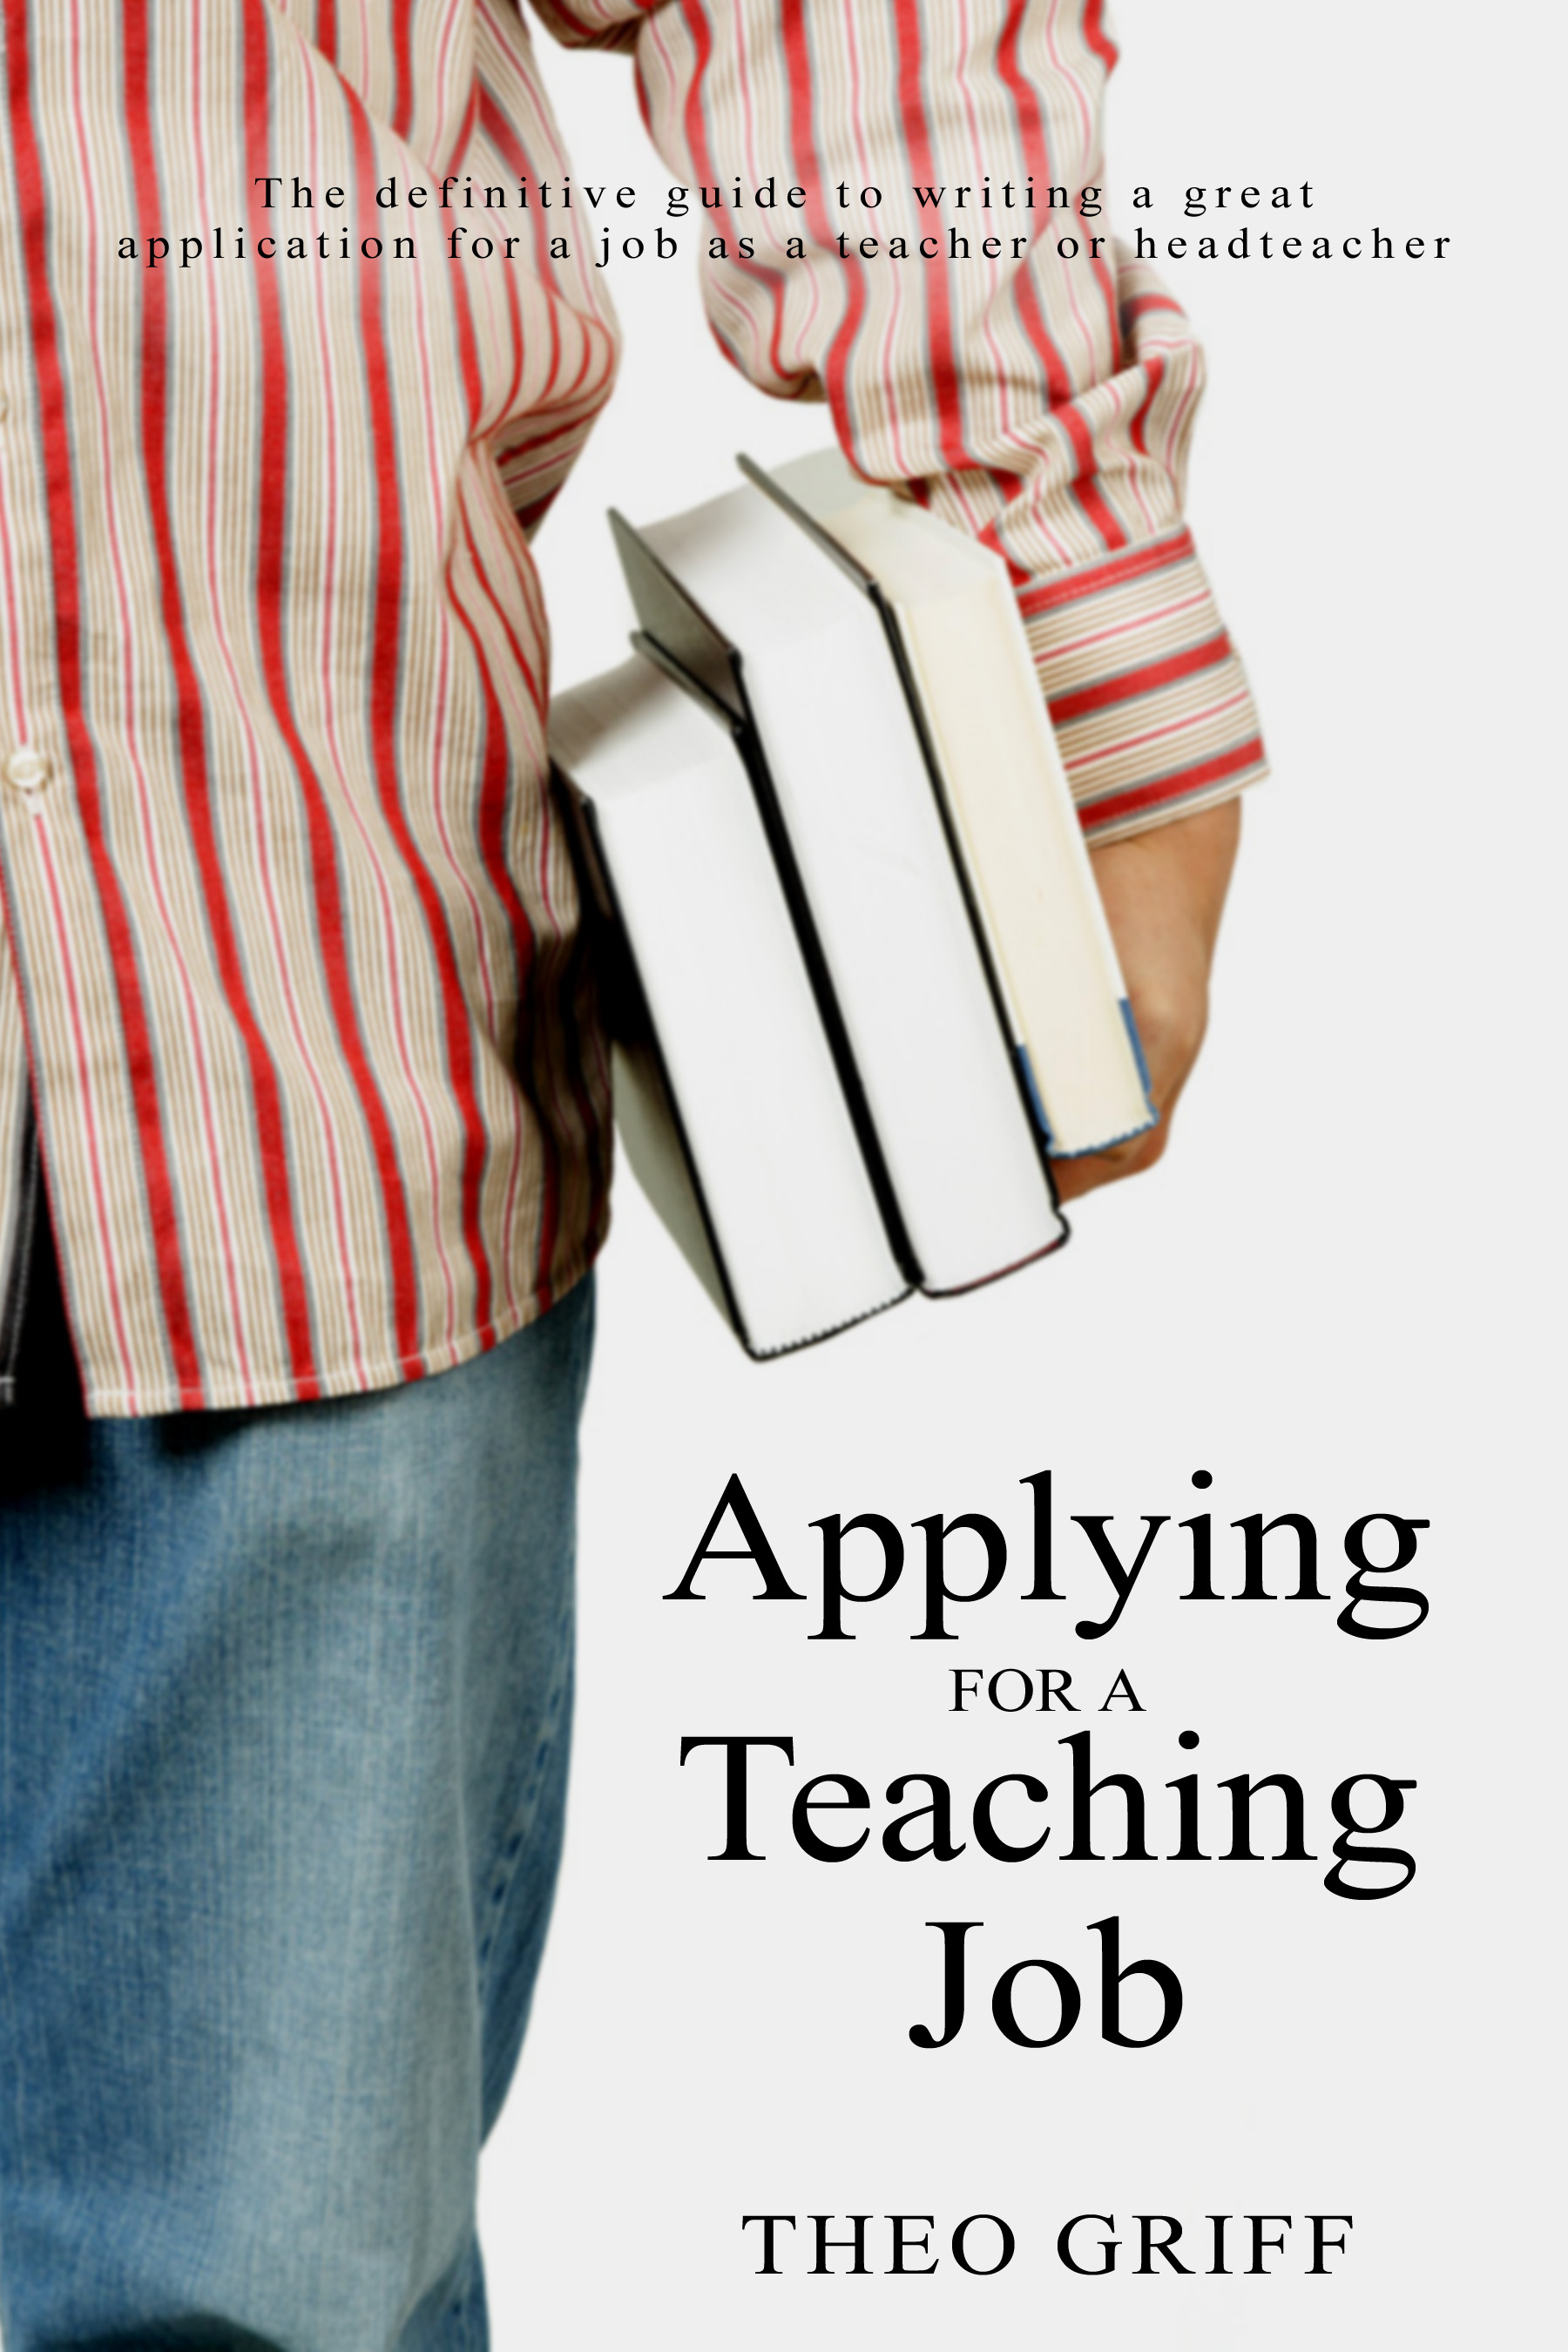 Applying for a teaching job - the definitive guide to writing a great applciation for a job as a teacher or headteacher